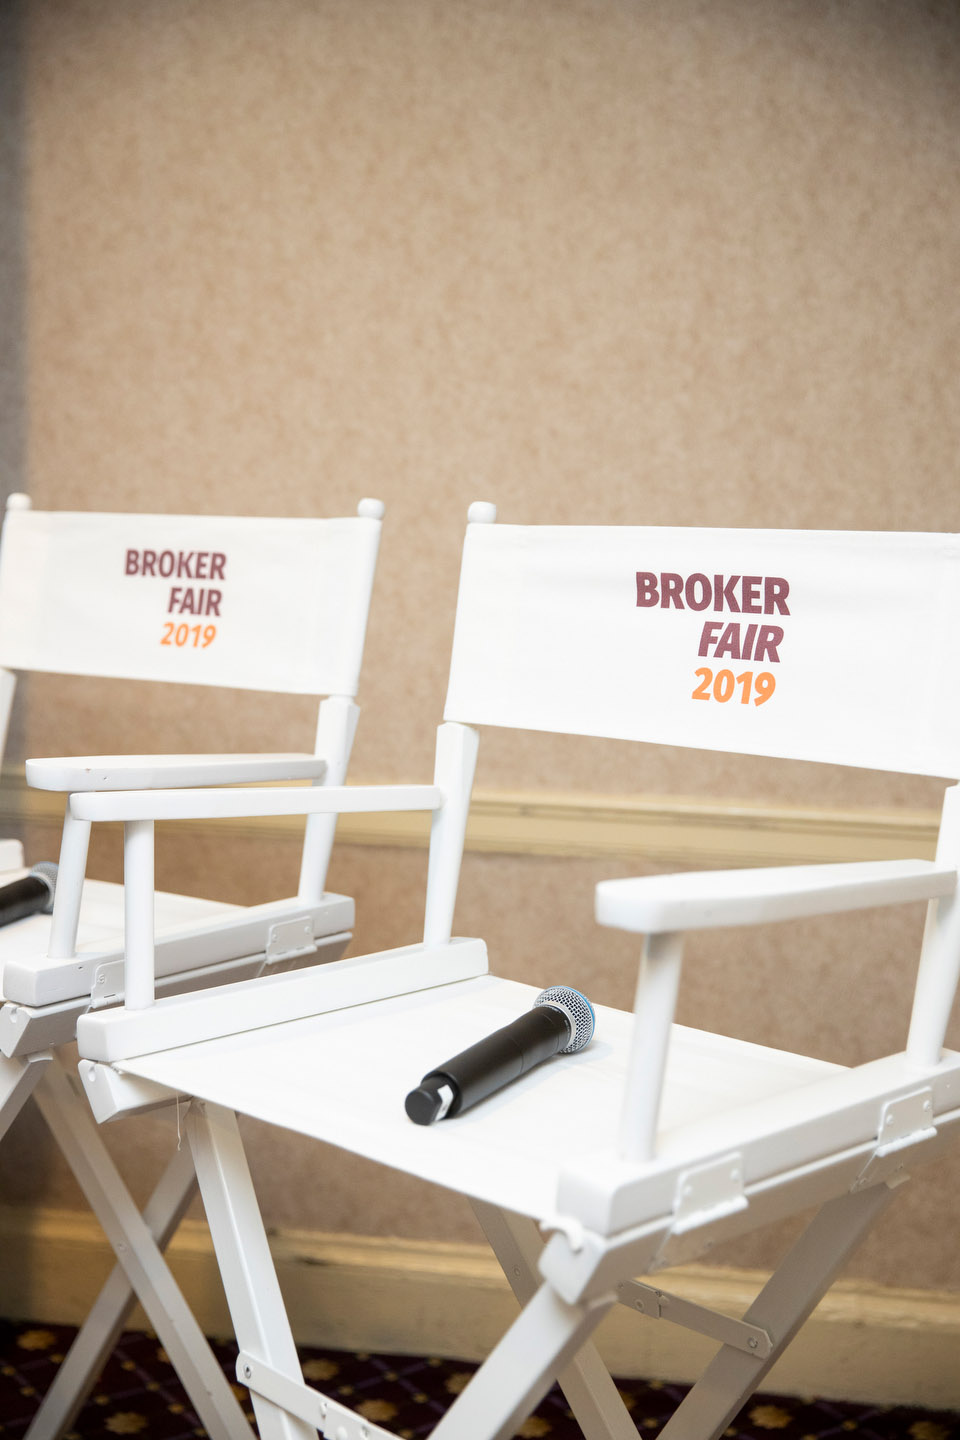 Broker Fair 2019 - Presented by deBanked - 235